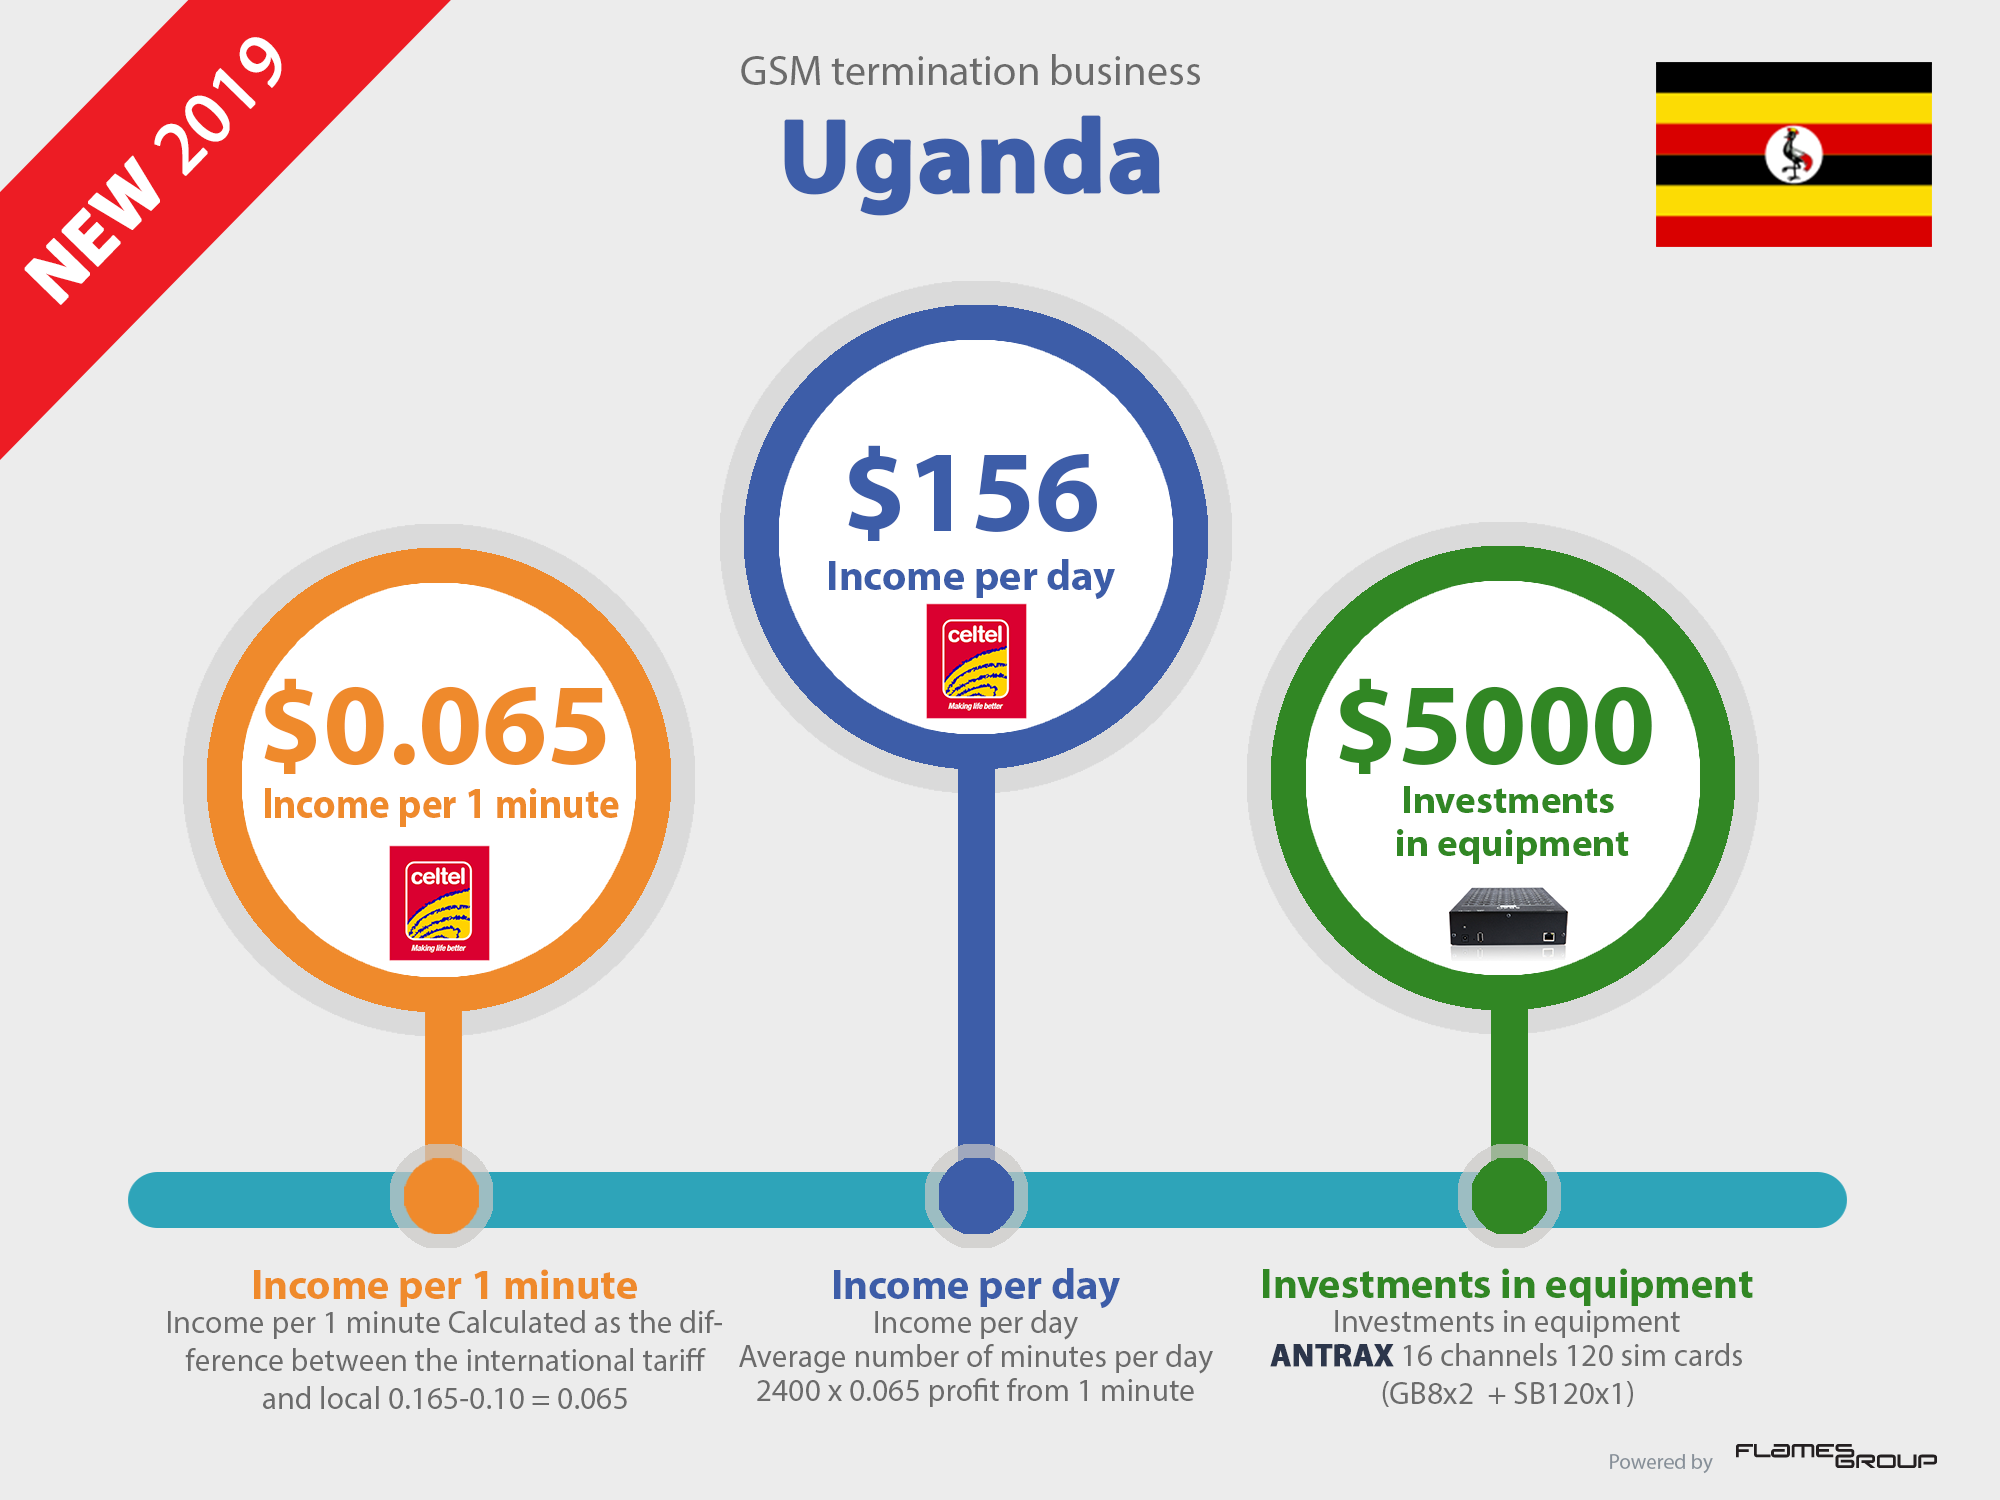 Call_VoIP_GSM_termination_business_profit_in_Uganda_Infographic_ANTRAX_2019-new